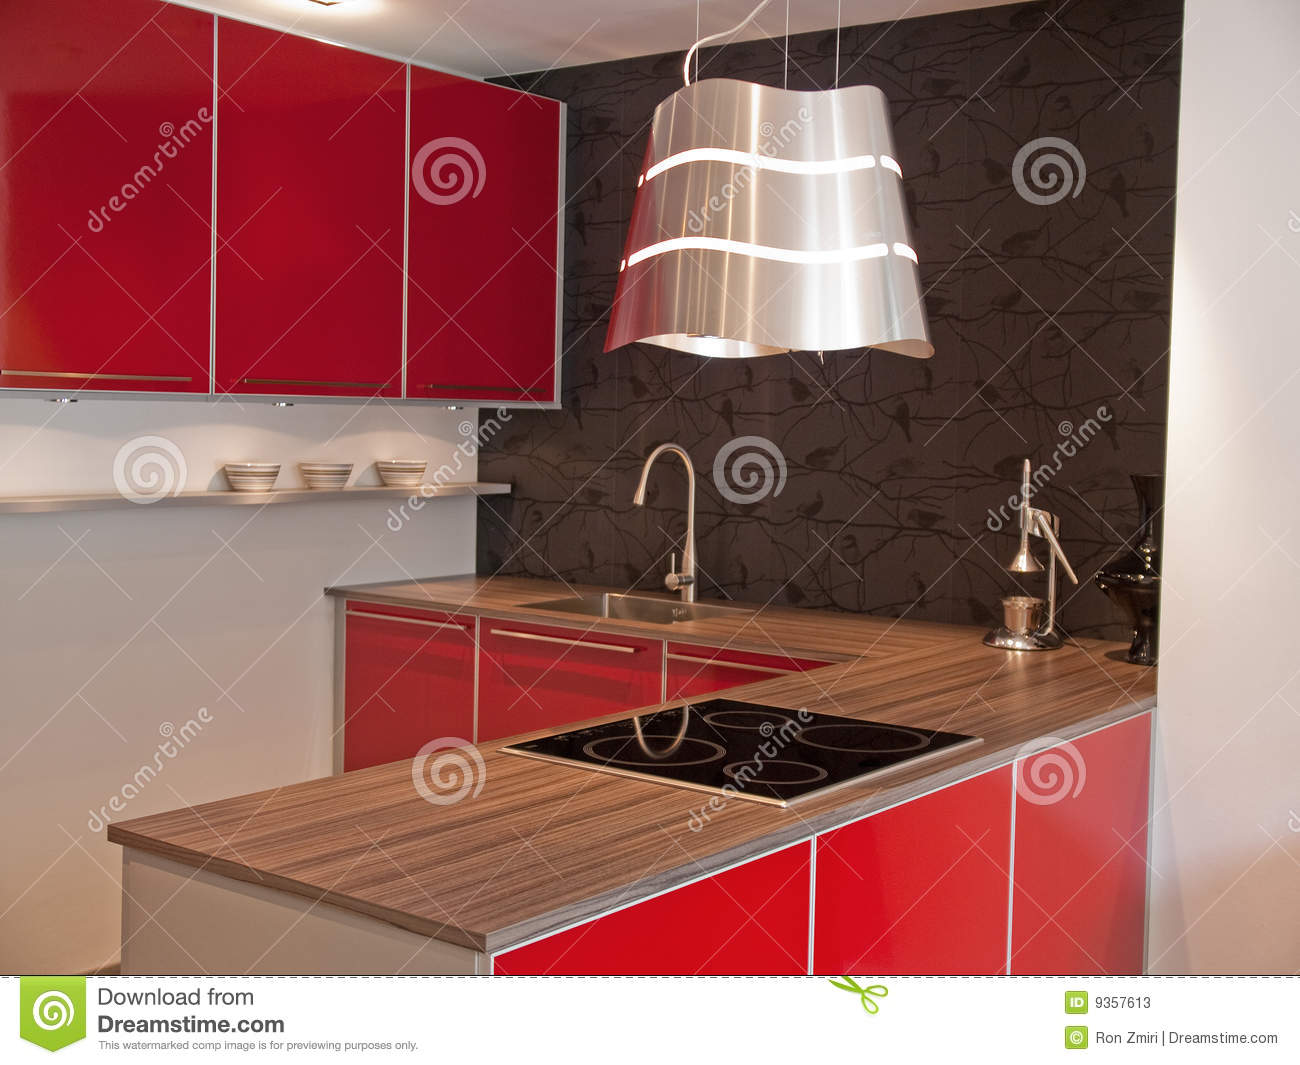 Rouge Moderne De Cuisine Photos Stock Image 9357613